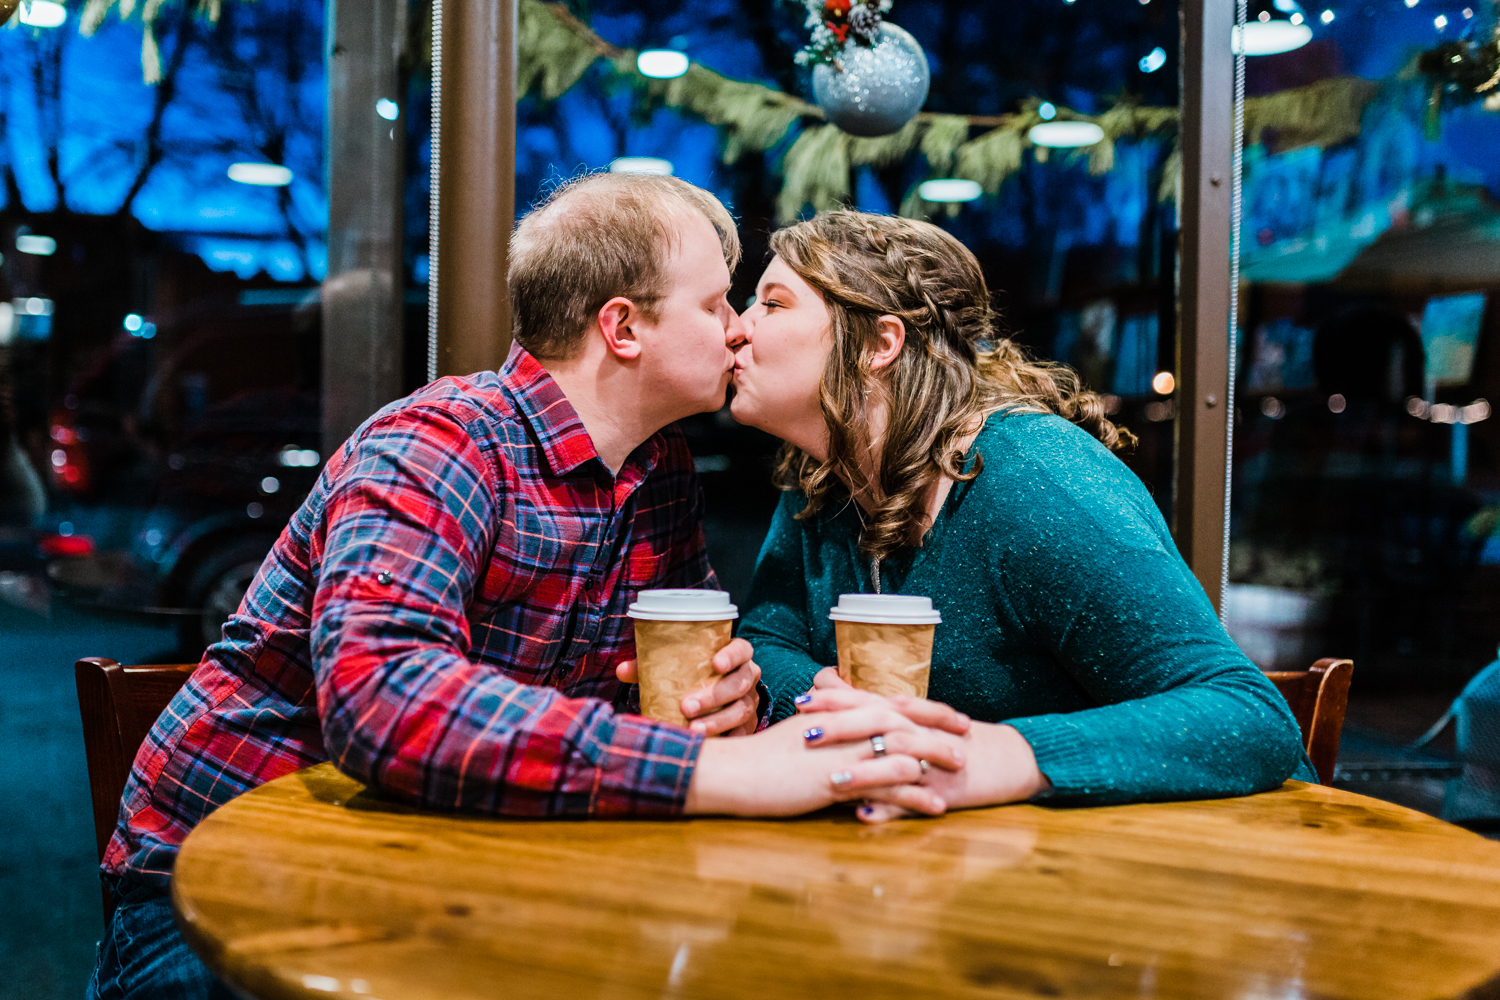 Frederick Maryland Downtown coffee shops - engagement sessions in coffee shop inspo - MD wedding photo and video